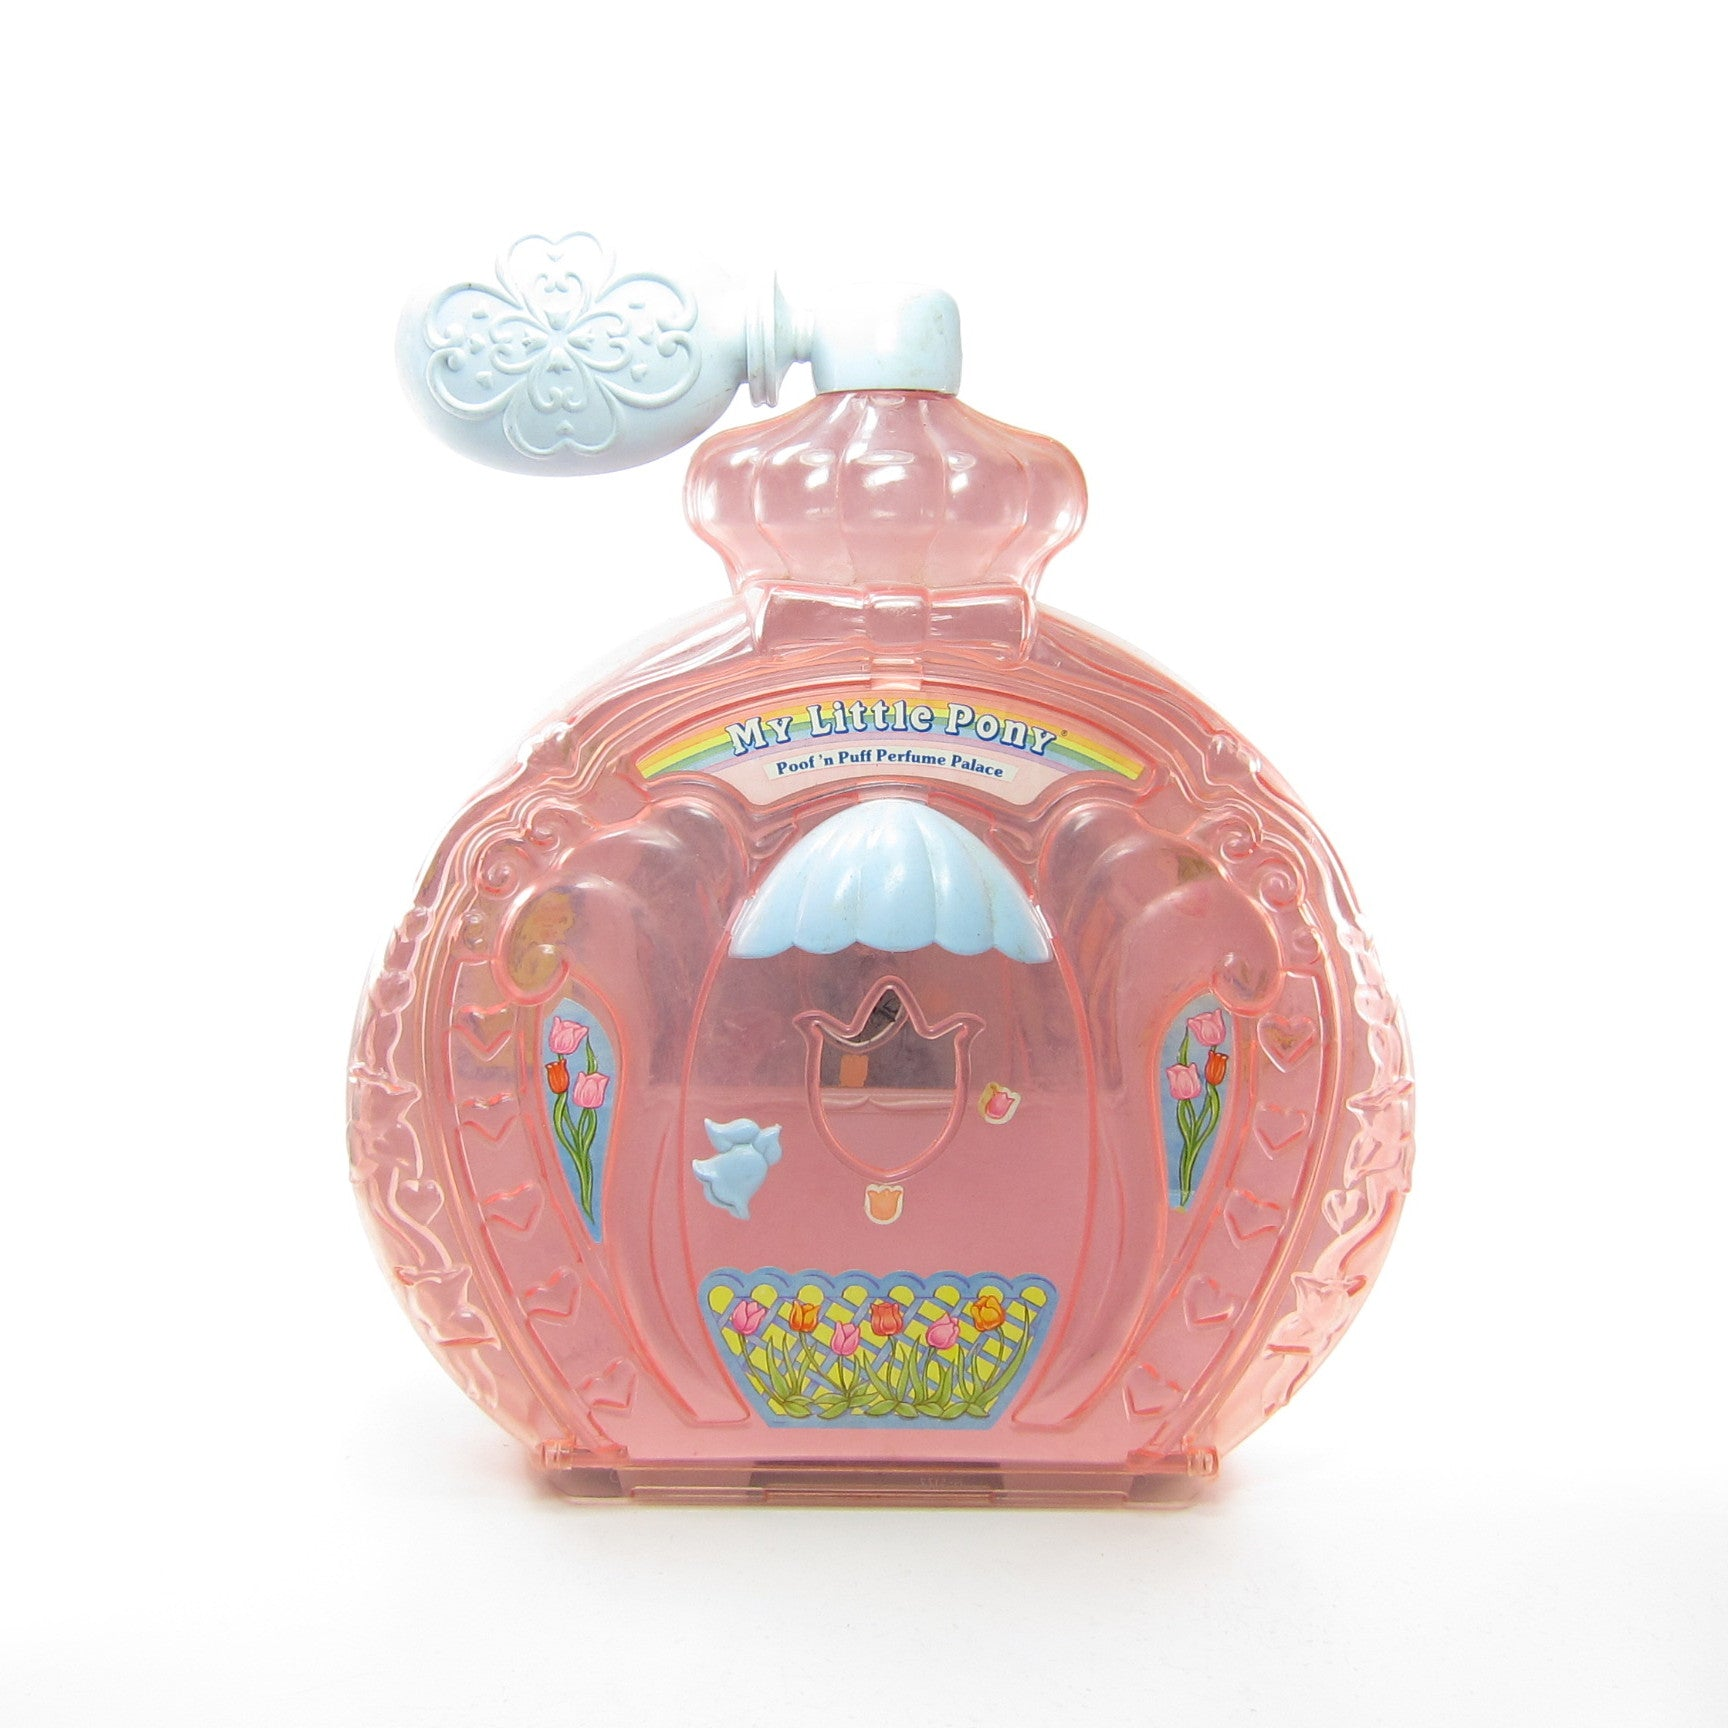 My Little Pony Poof 'n Puff Perfume Palace playset